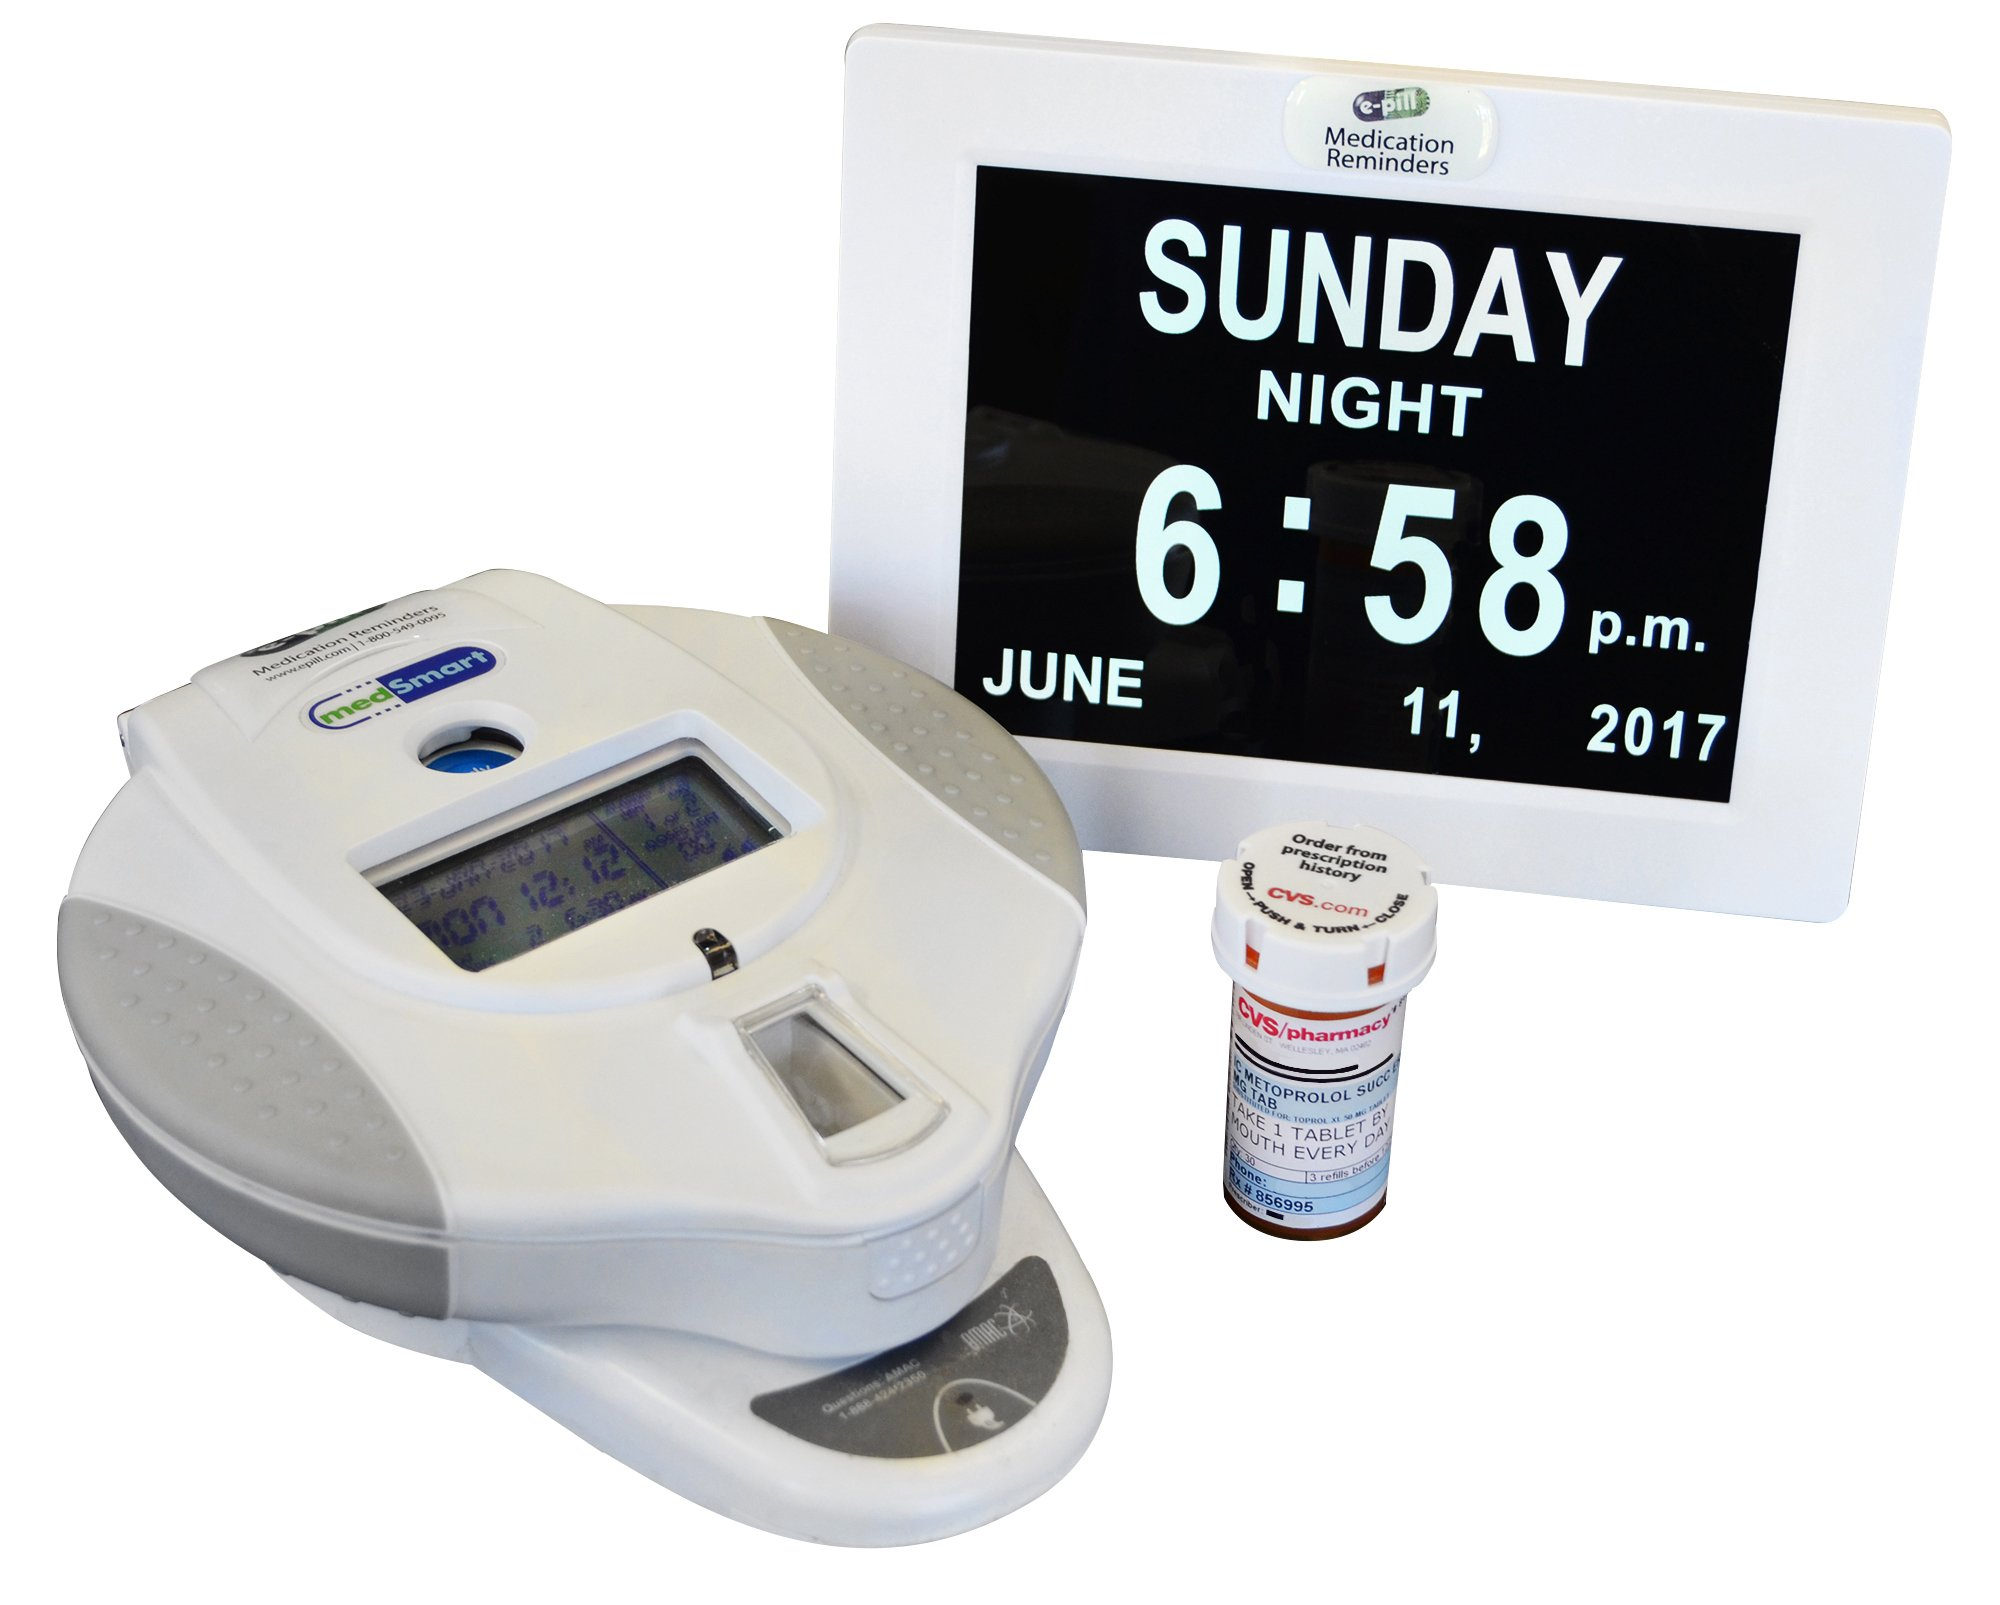 e-pill MedSmart Automatic Medication Dispenser with Calendar Day Clock by e-pill Medication Reminders